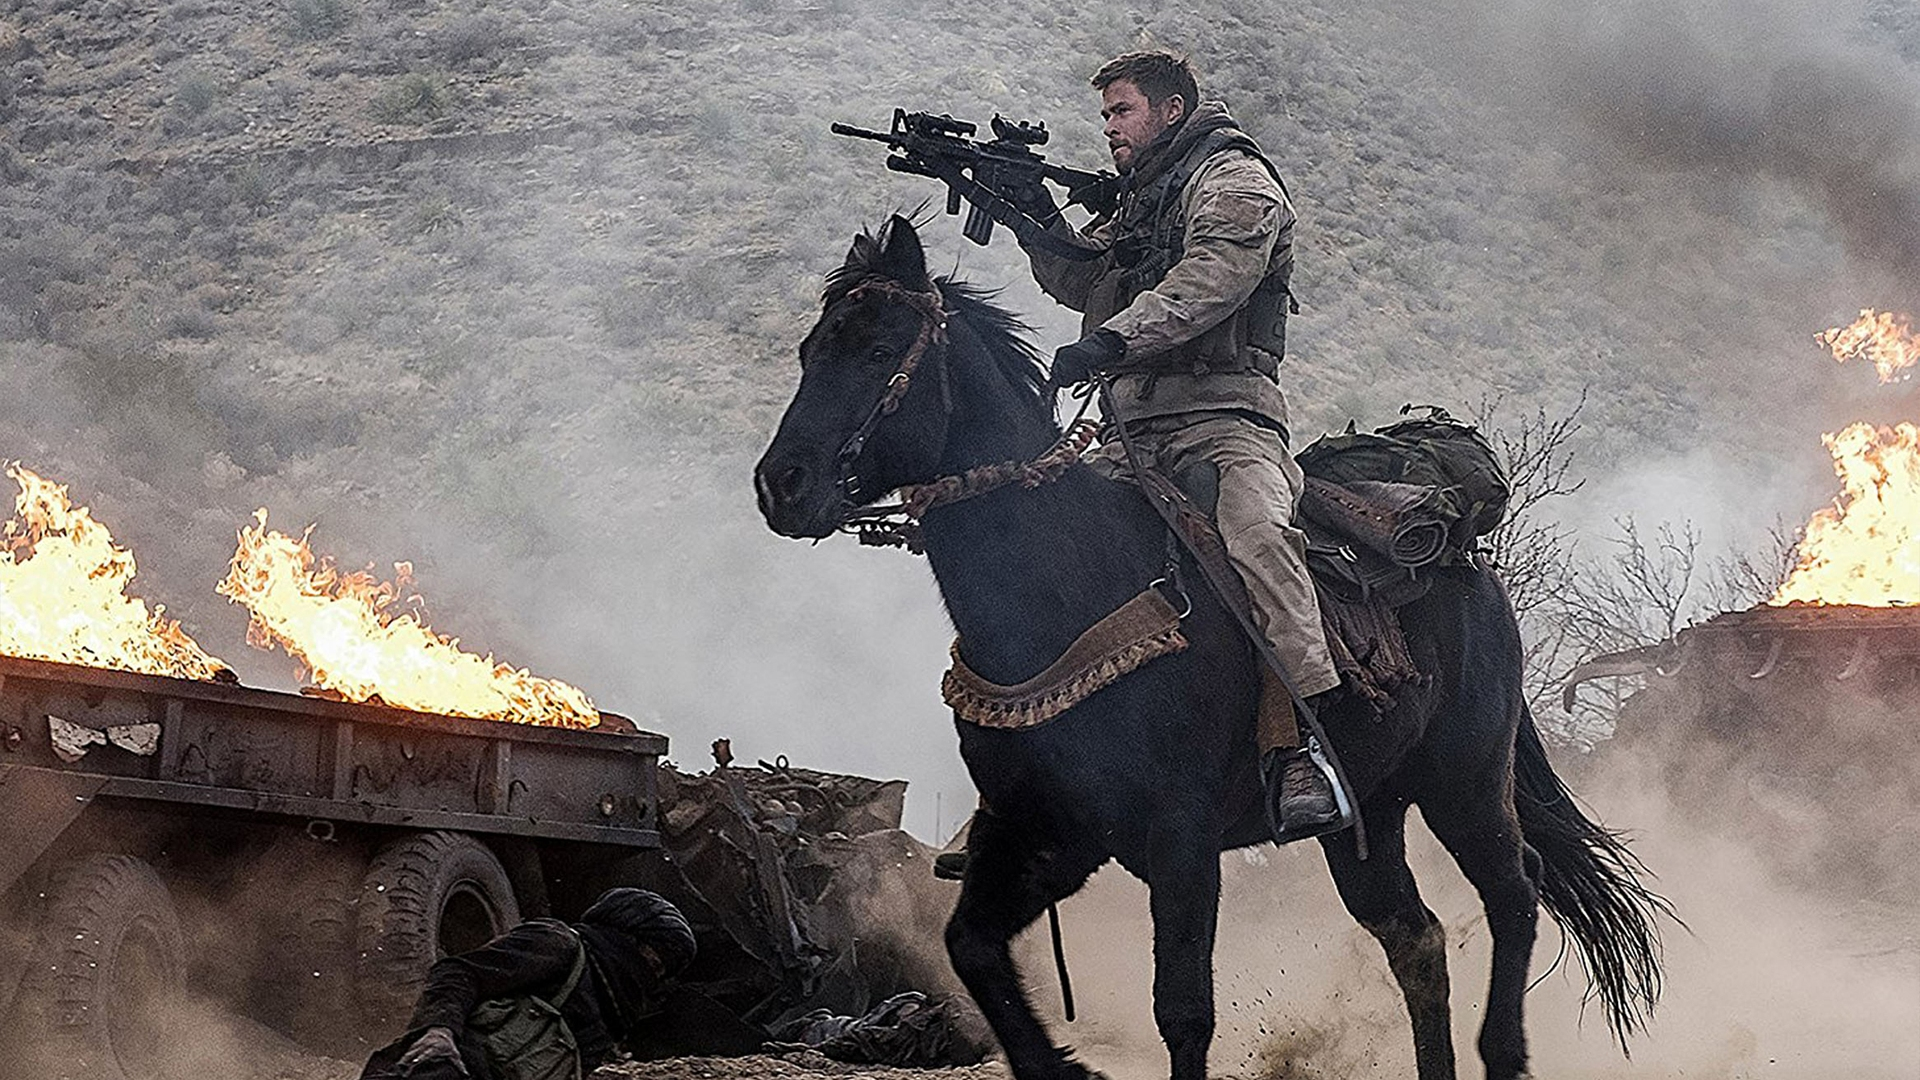 12 Strong 2018 [Movie] Wallpaper HD 1920x1080